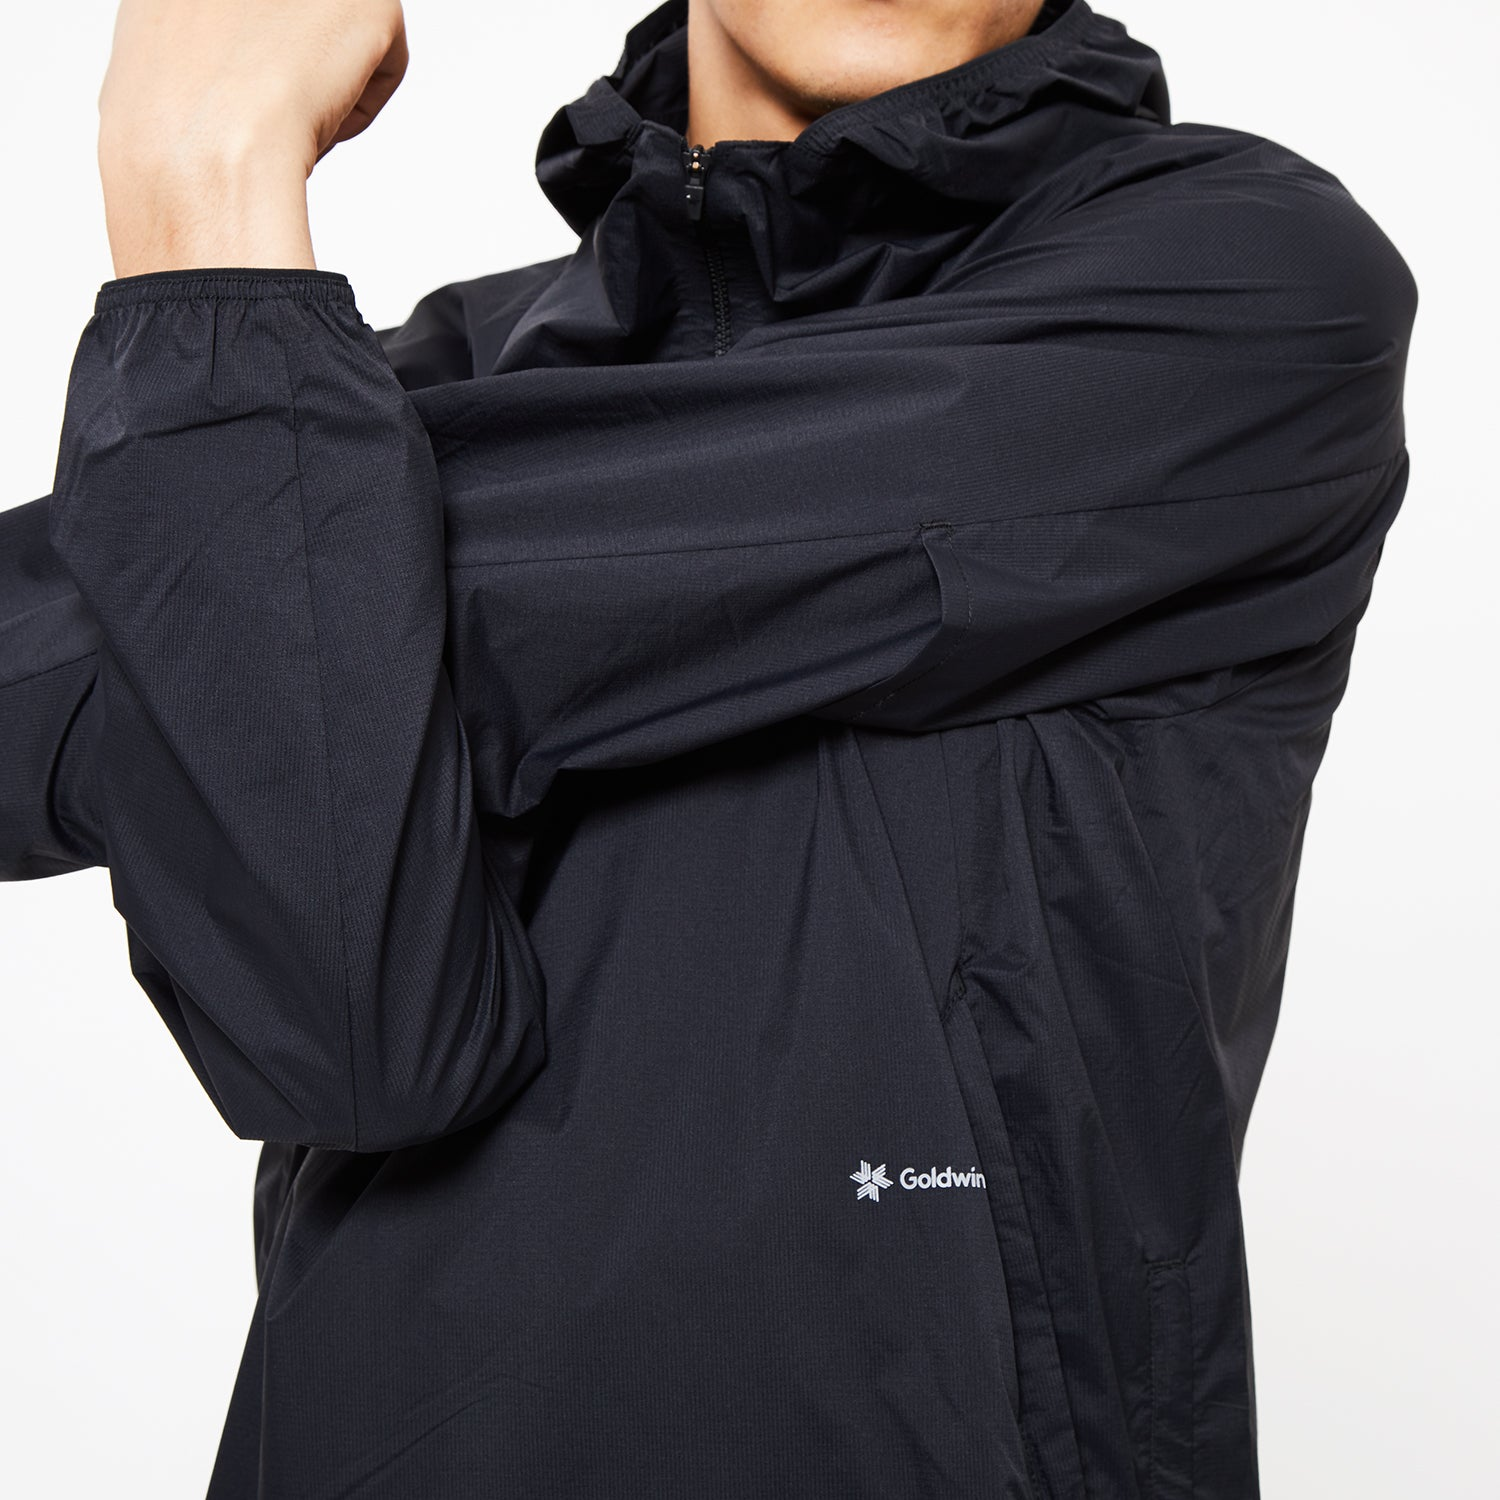 WOVEN STRETCH HALF ZIP PULLOVER BLACK